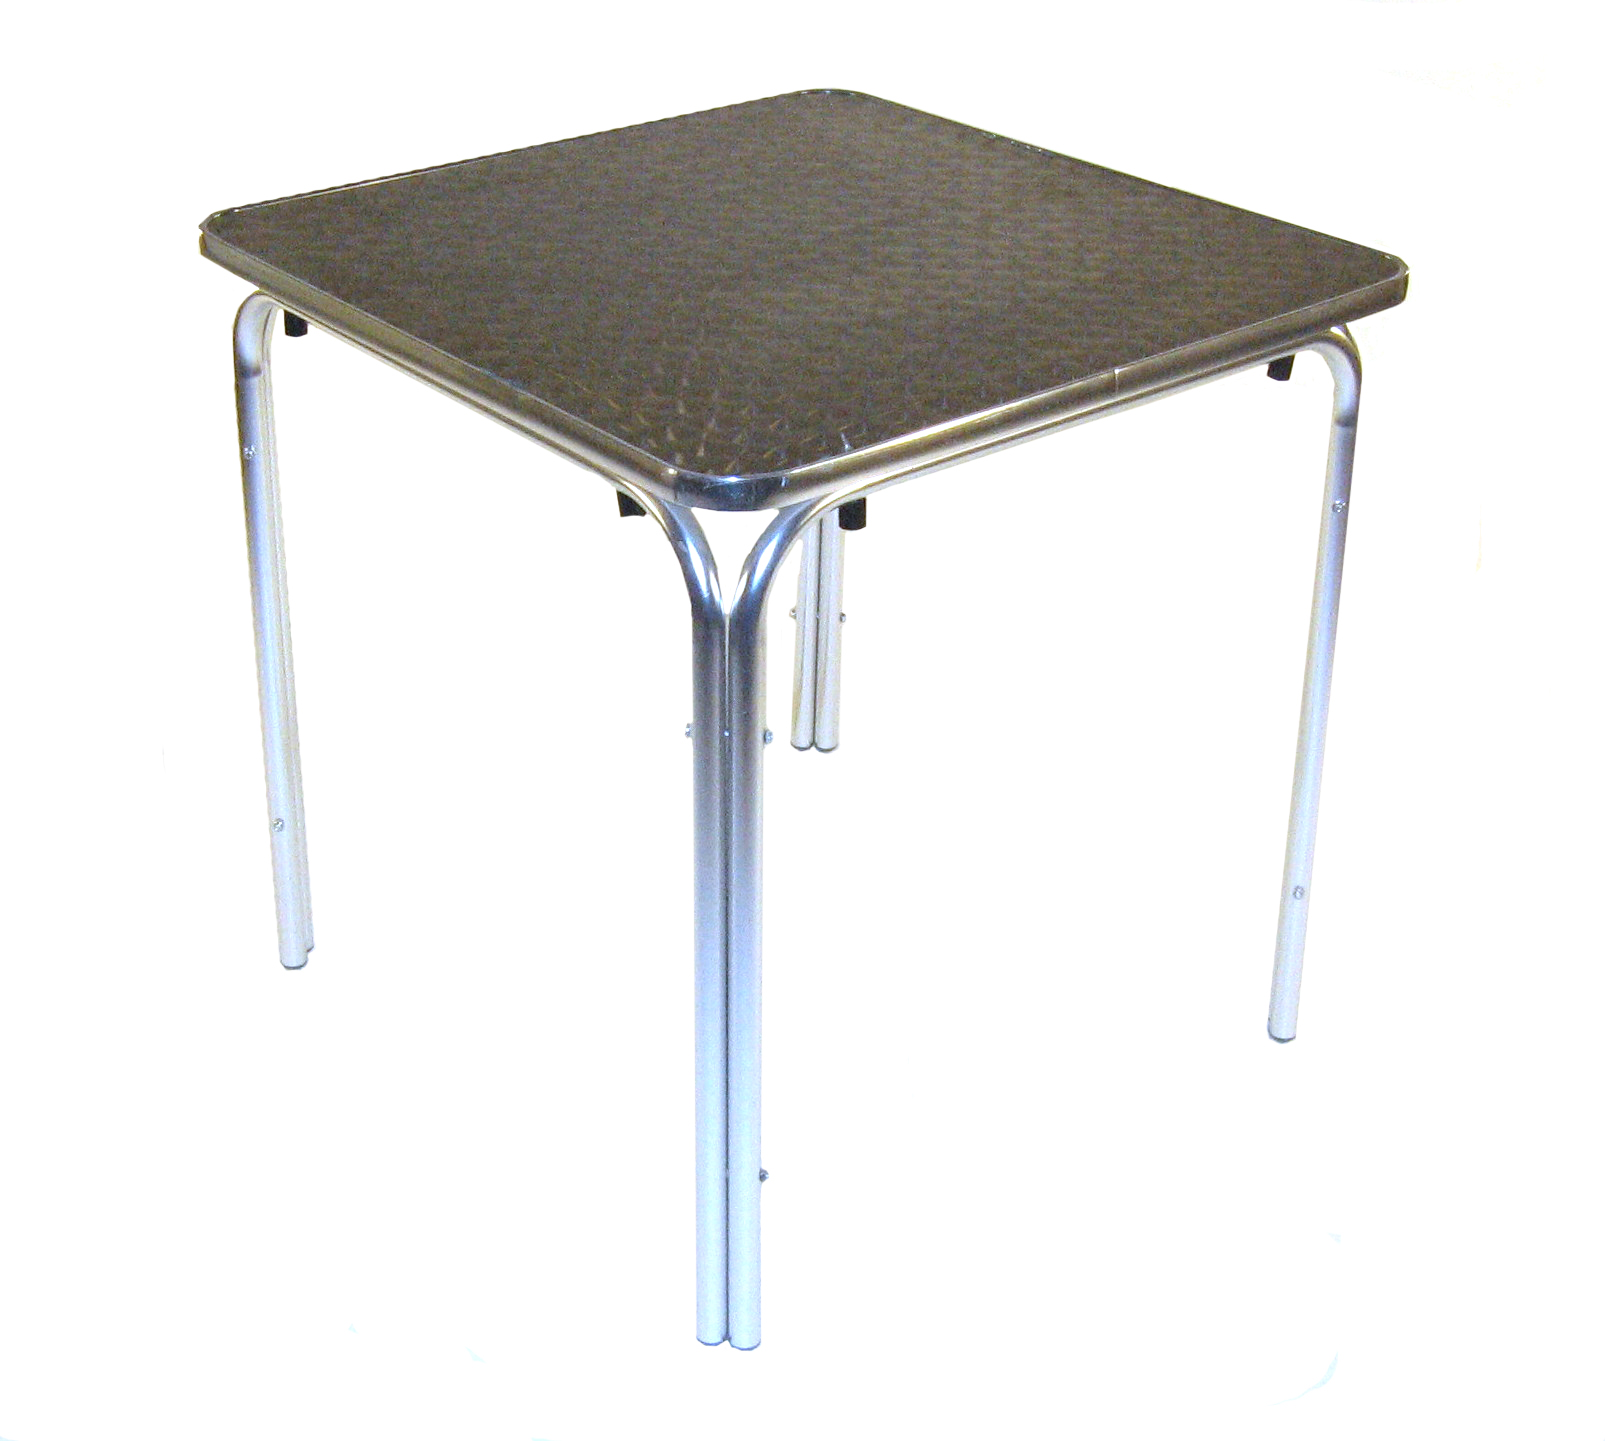 Aluminium Square Table - 70cm Rimmed Edge Stacking - BE Furniture Sales